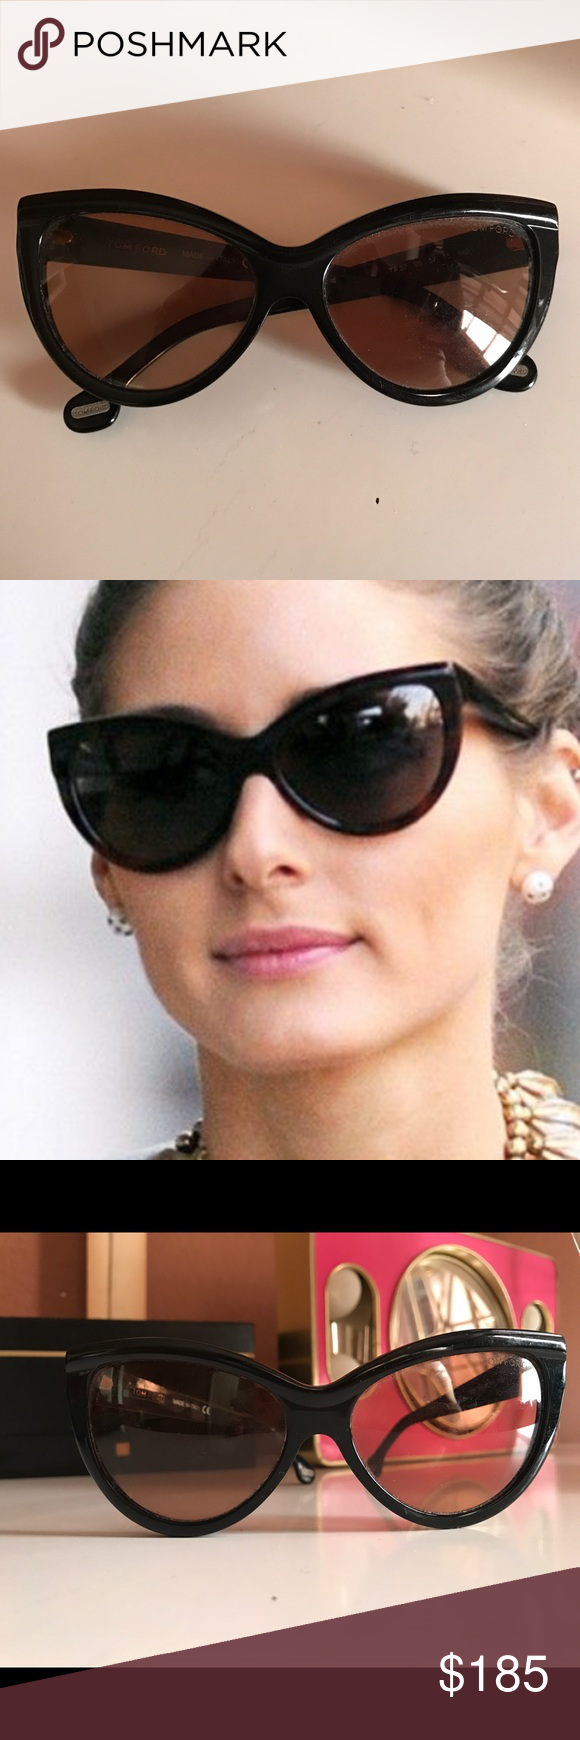 6be19b7d931f Tom Ford Cateye Sunglasses Anouk These are original authentic Tom Ford  Sunglasses. Anouk is a